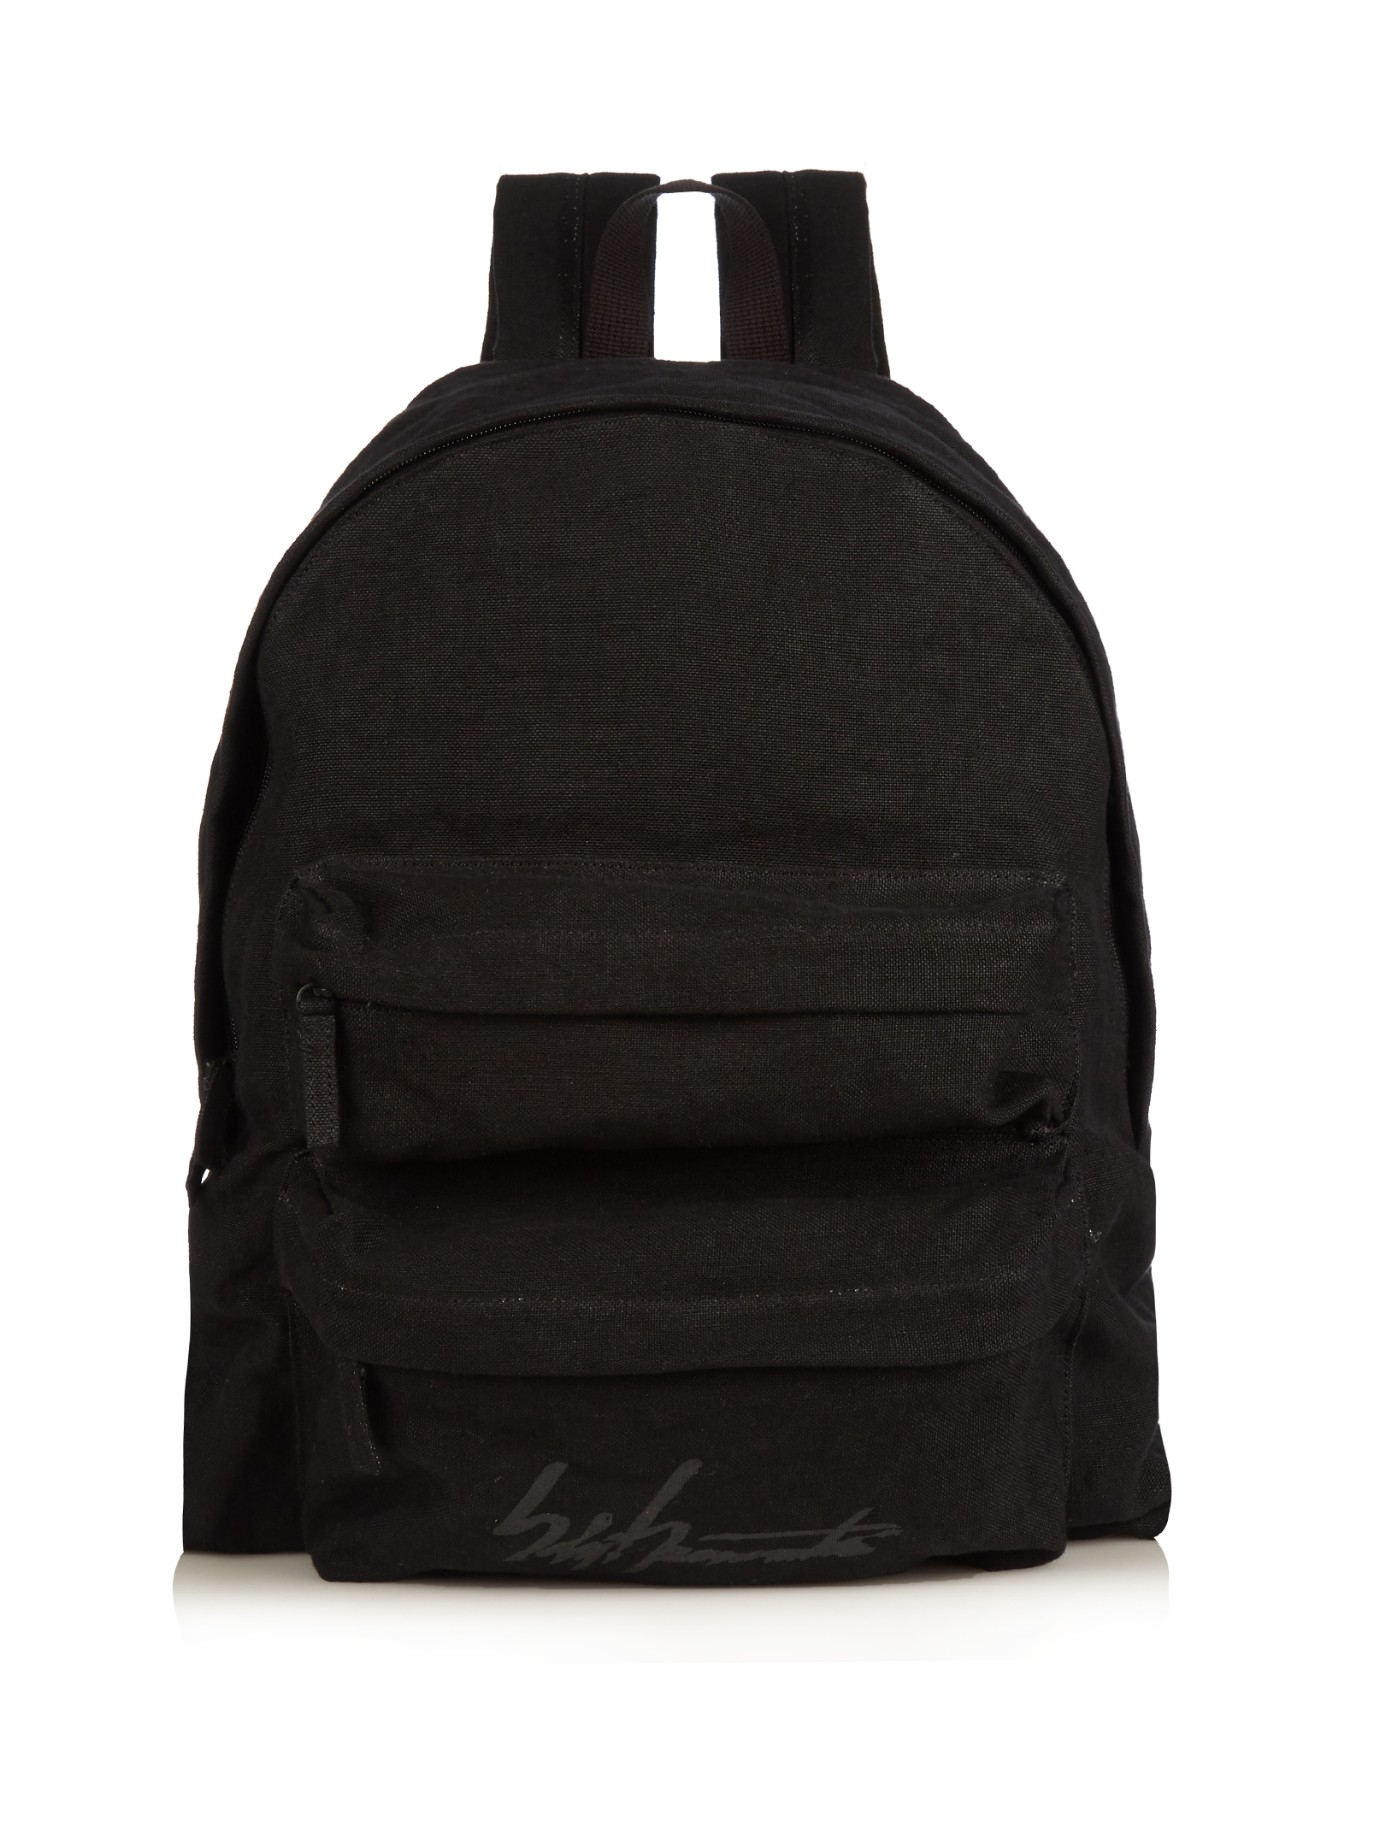 6bdf124f7f Lyst - Yohji Yamamoto Logo-printed Linen Backpack in Black for Men